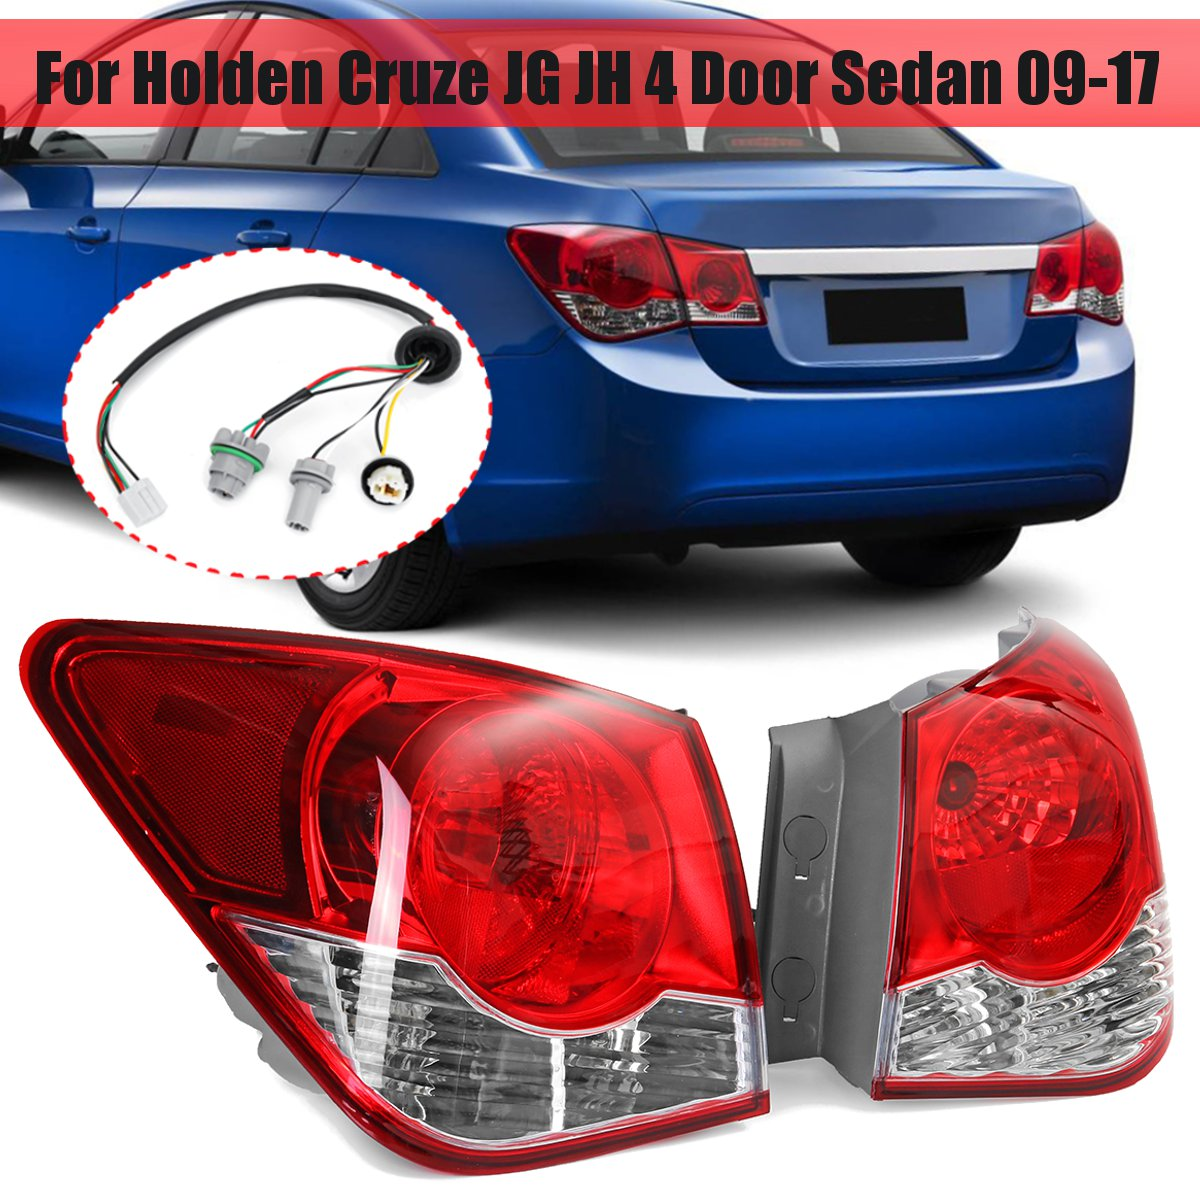 hight resolution of 2 rear tail light with wire harness for holden cruze jg jh 4 door sedan 2009 2017 brake lamp for toyota tacoma